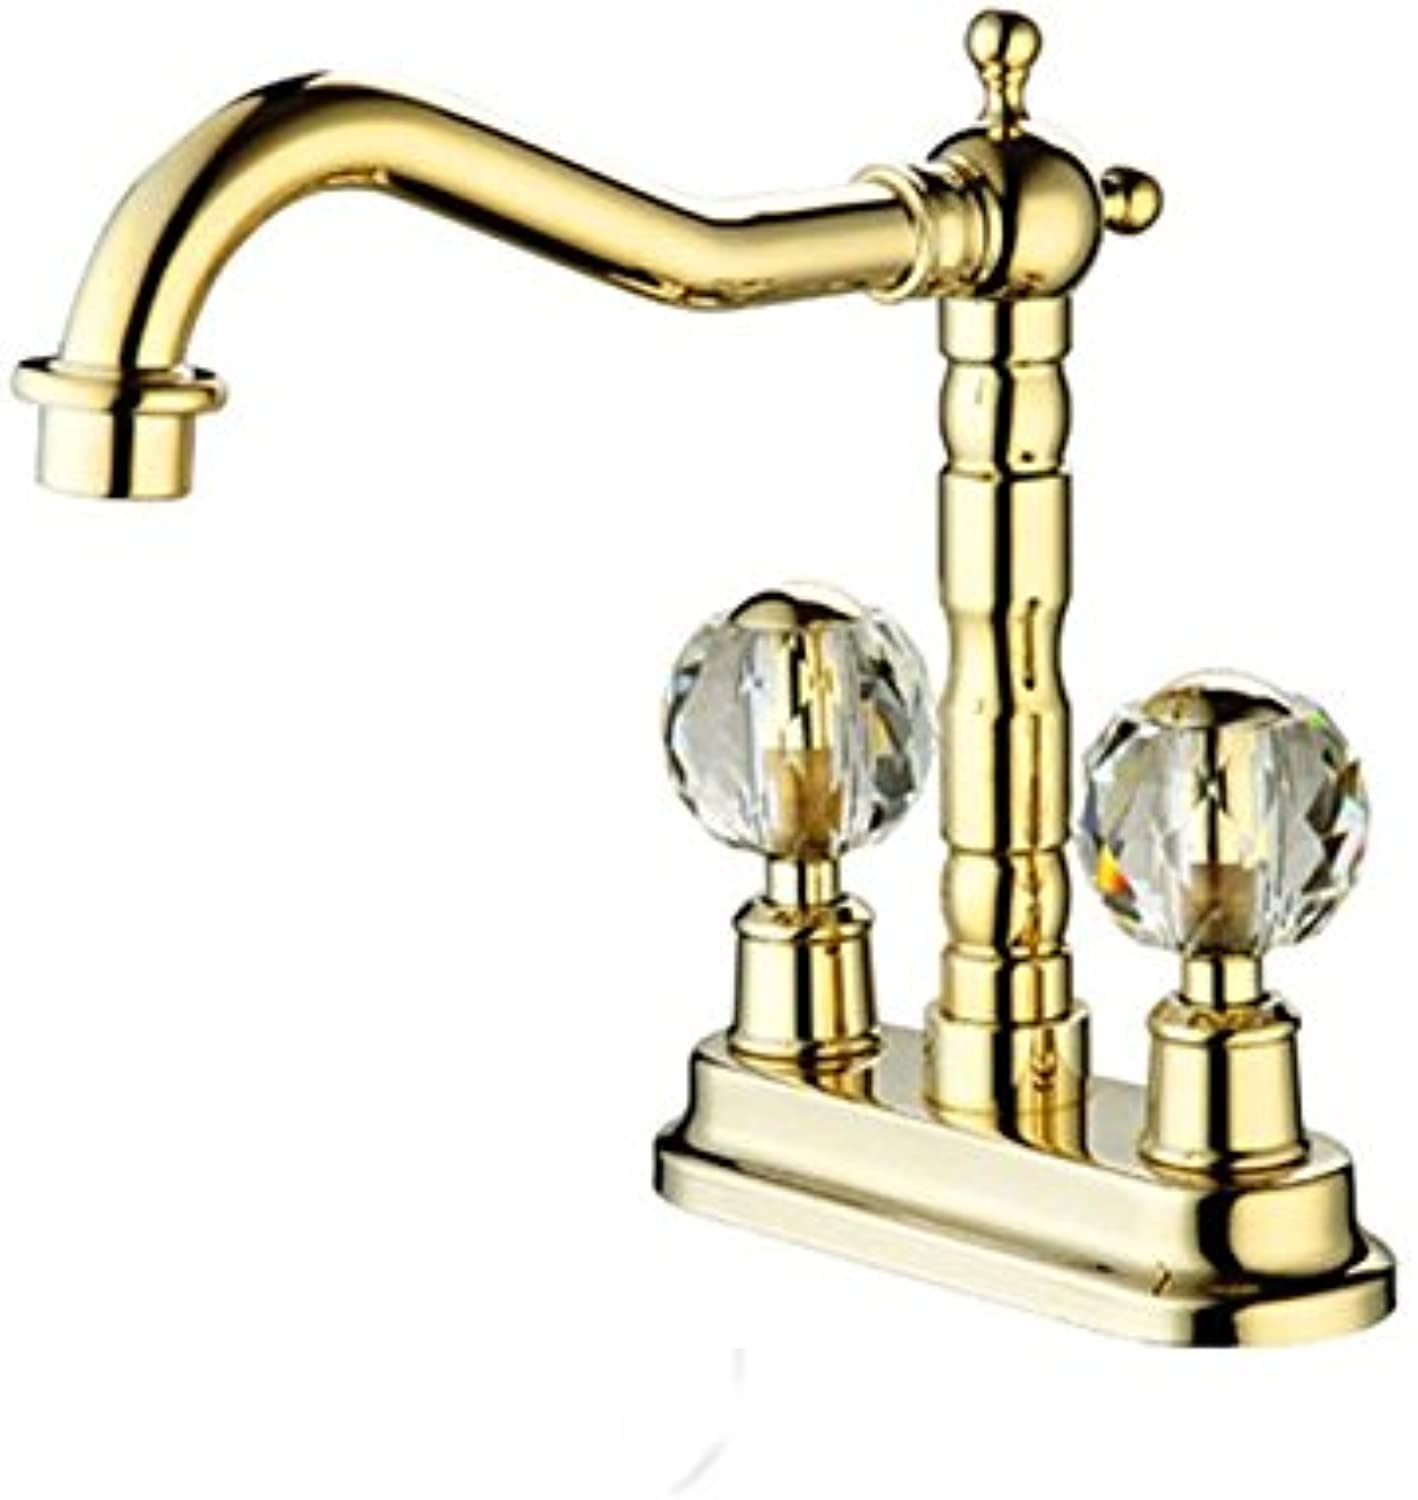 Gyps Faucet Basin Mixer Tap Waterfall Faucet Antique Bathroom Mixer Bar Mixer Shower Set Tap antique bathroom faucet Antique simple full copper hot and cold kitchen sink faucet kitchen faucet B as a w